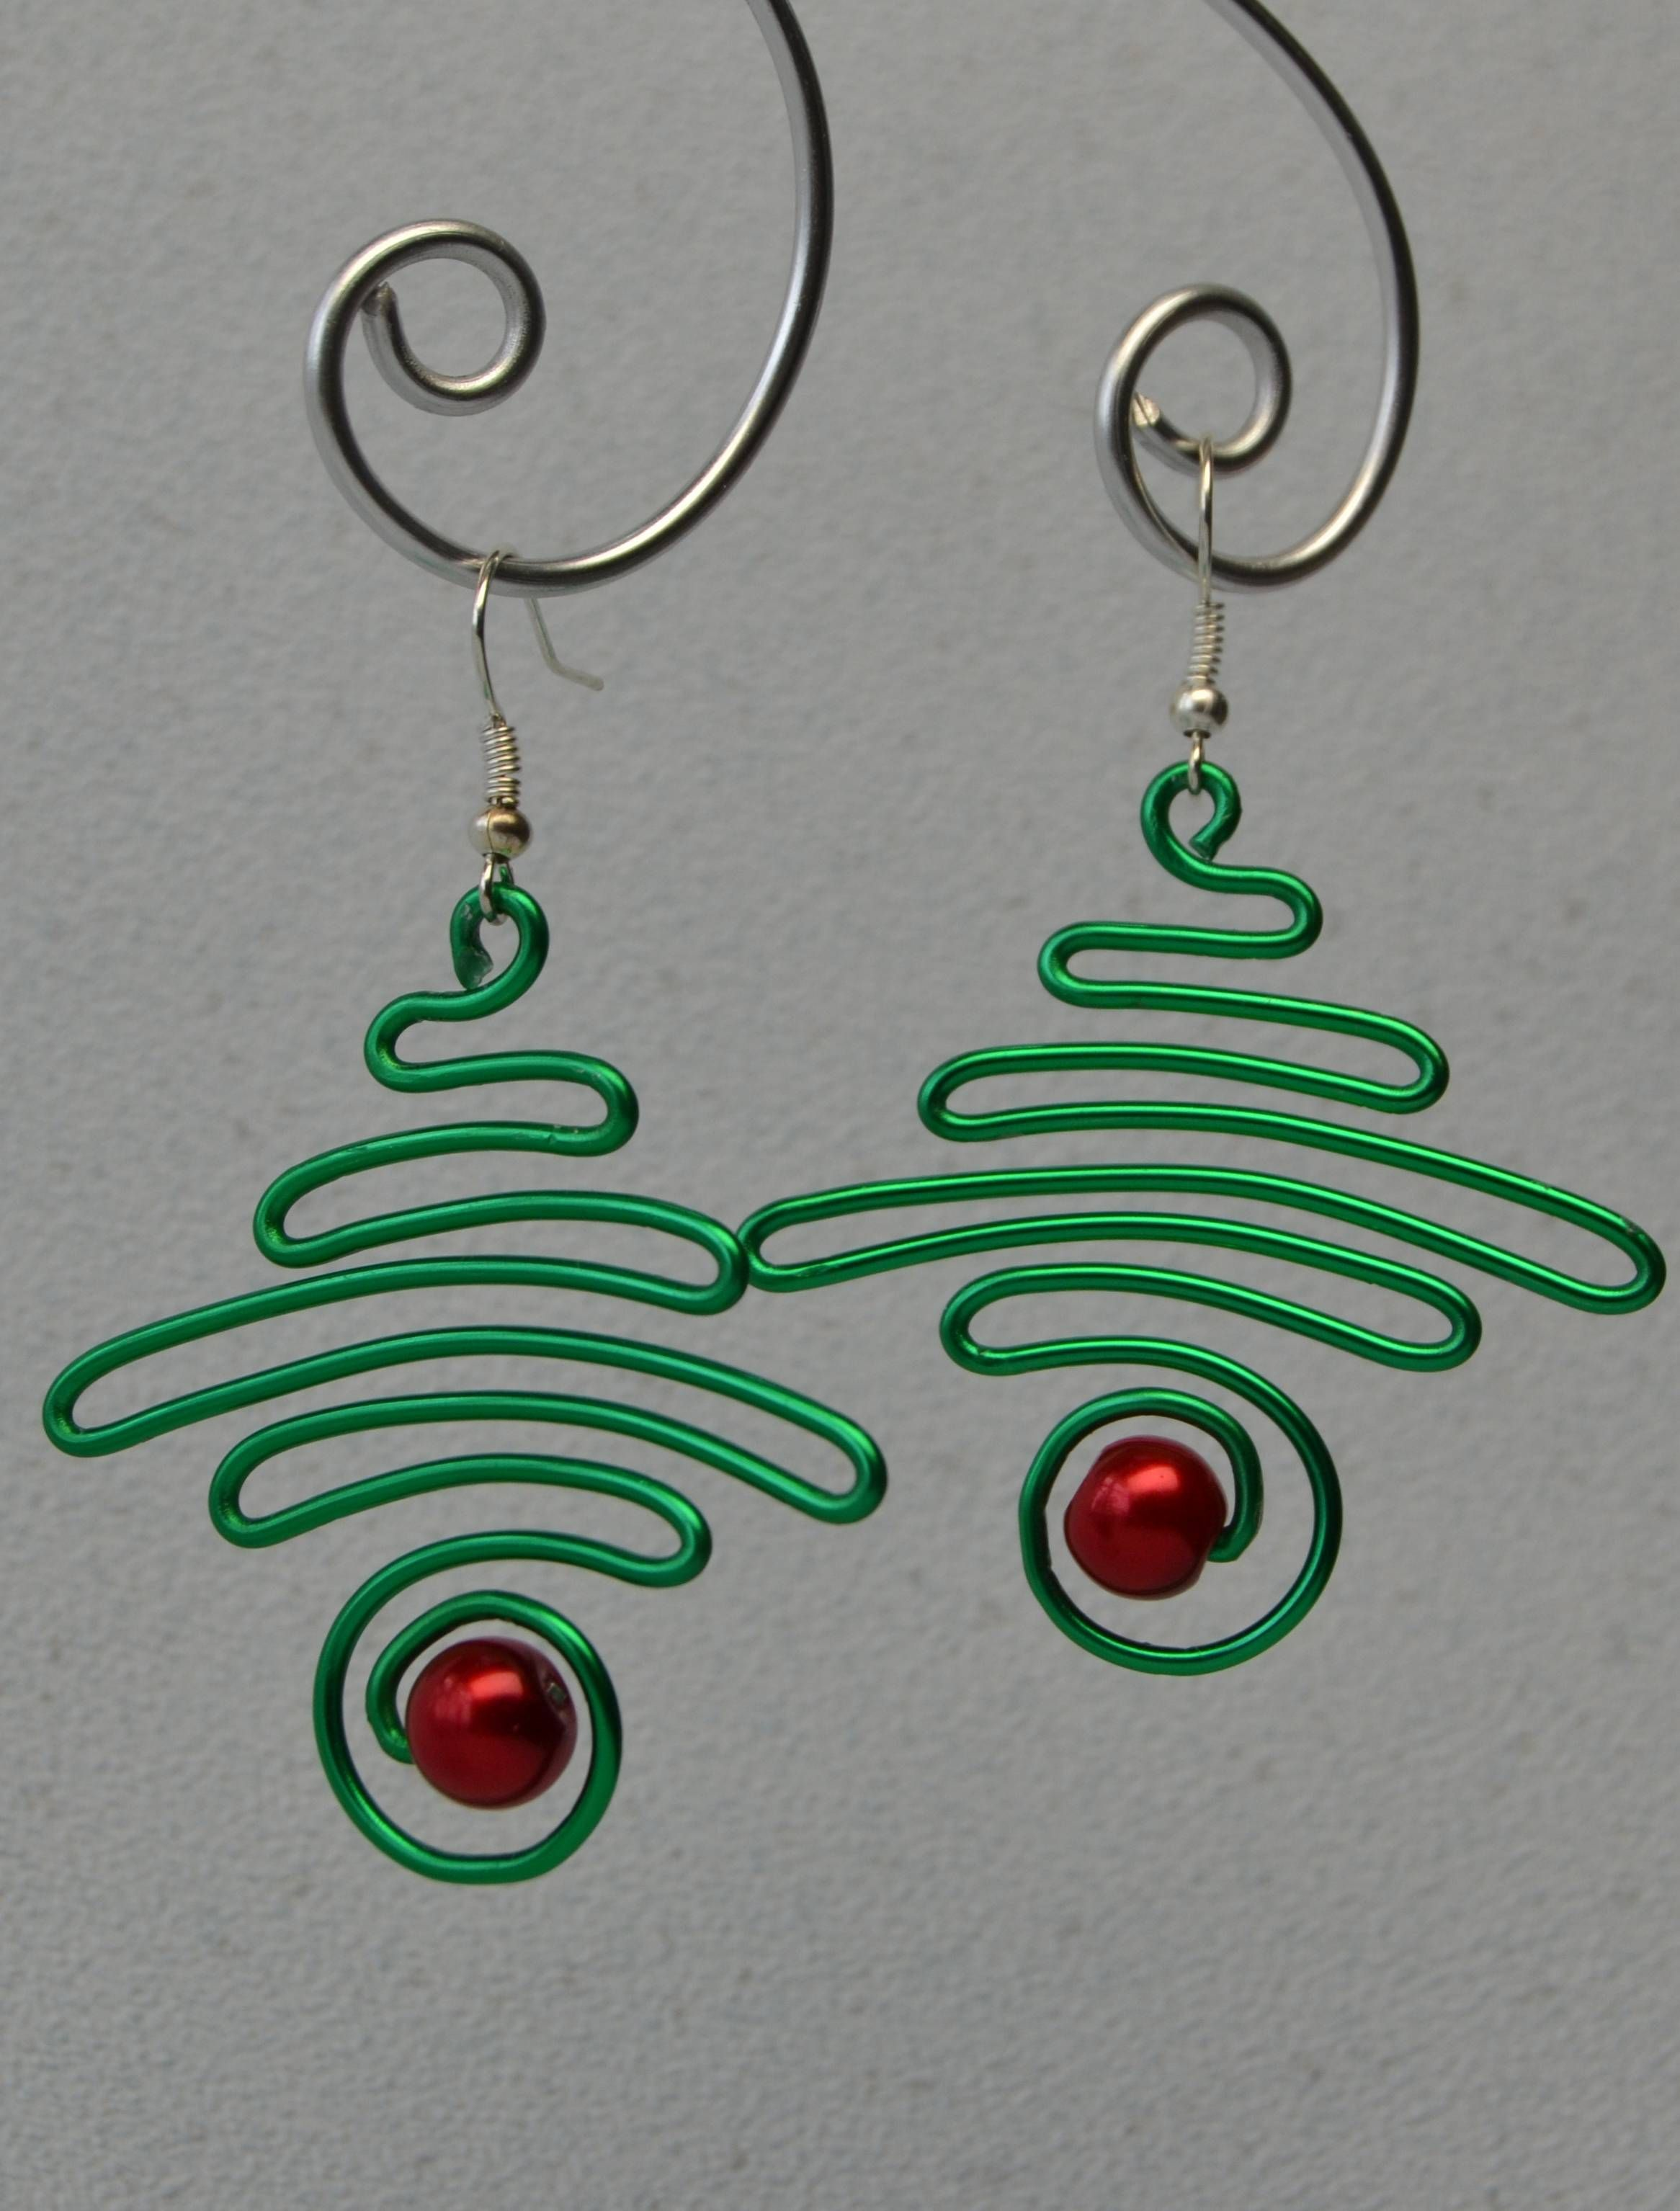 Diy Earrings With Beebeecraft Wire Jewelry Making Holiday